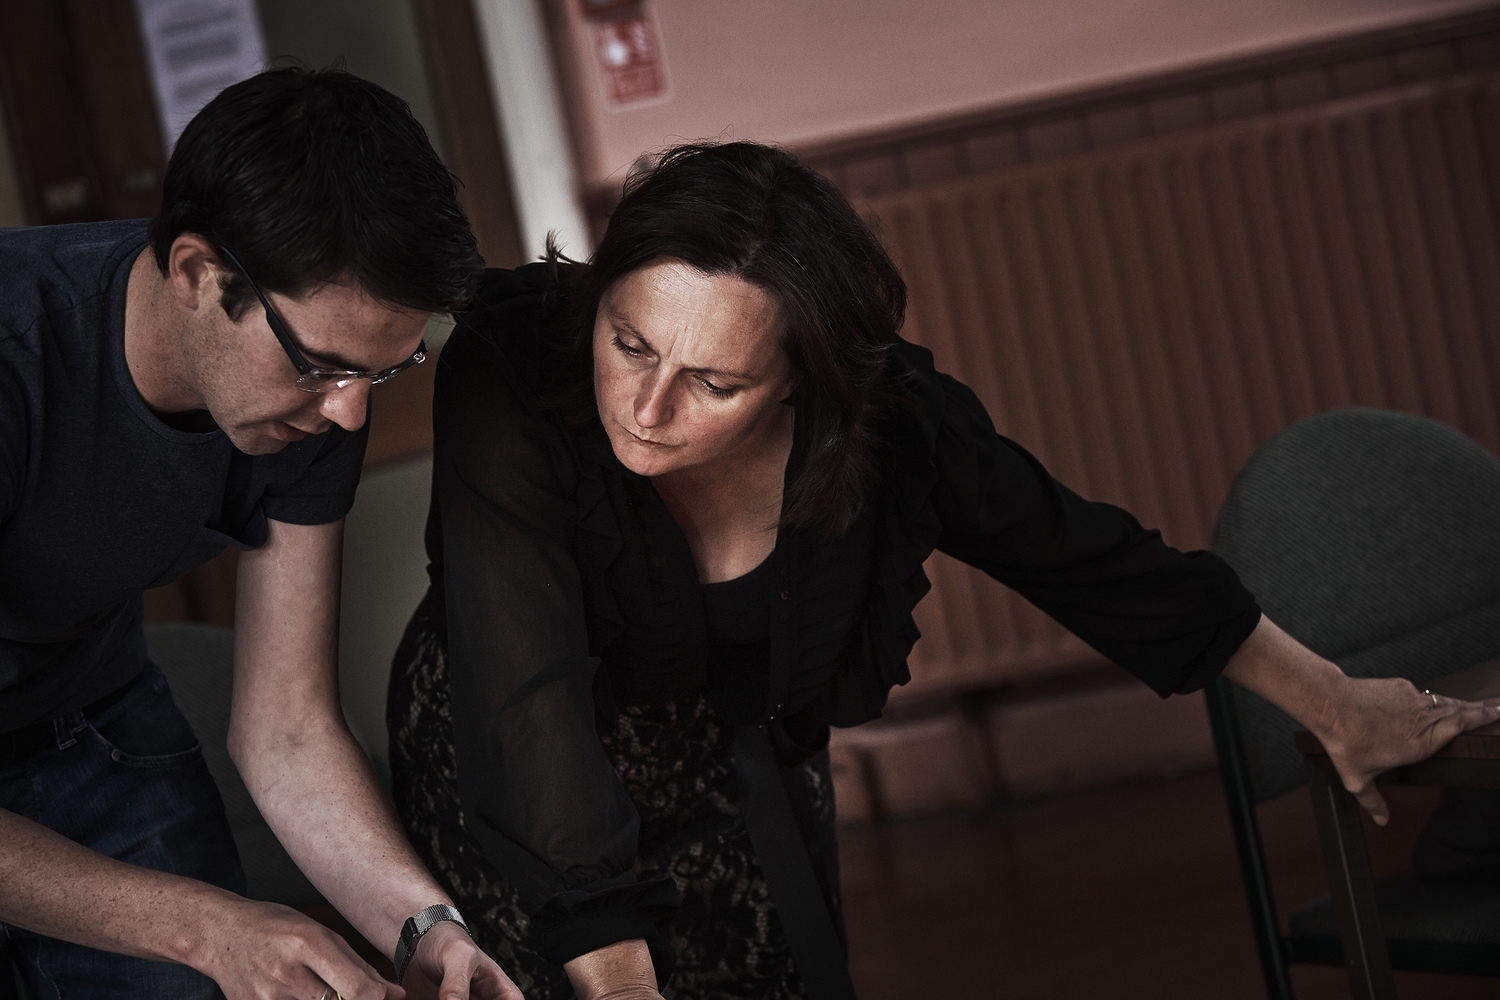 Diarmuid O'Quigley (Stage Manager) and Judy Hegarty Lovett (Director) in rehearsals for Waiting For Godot. Photo by Ross Kavanagh.